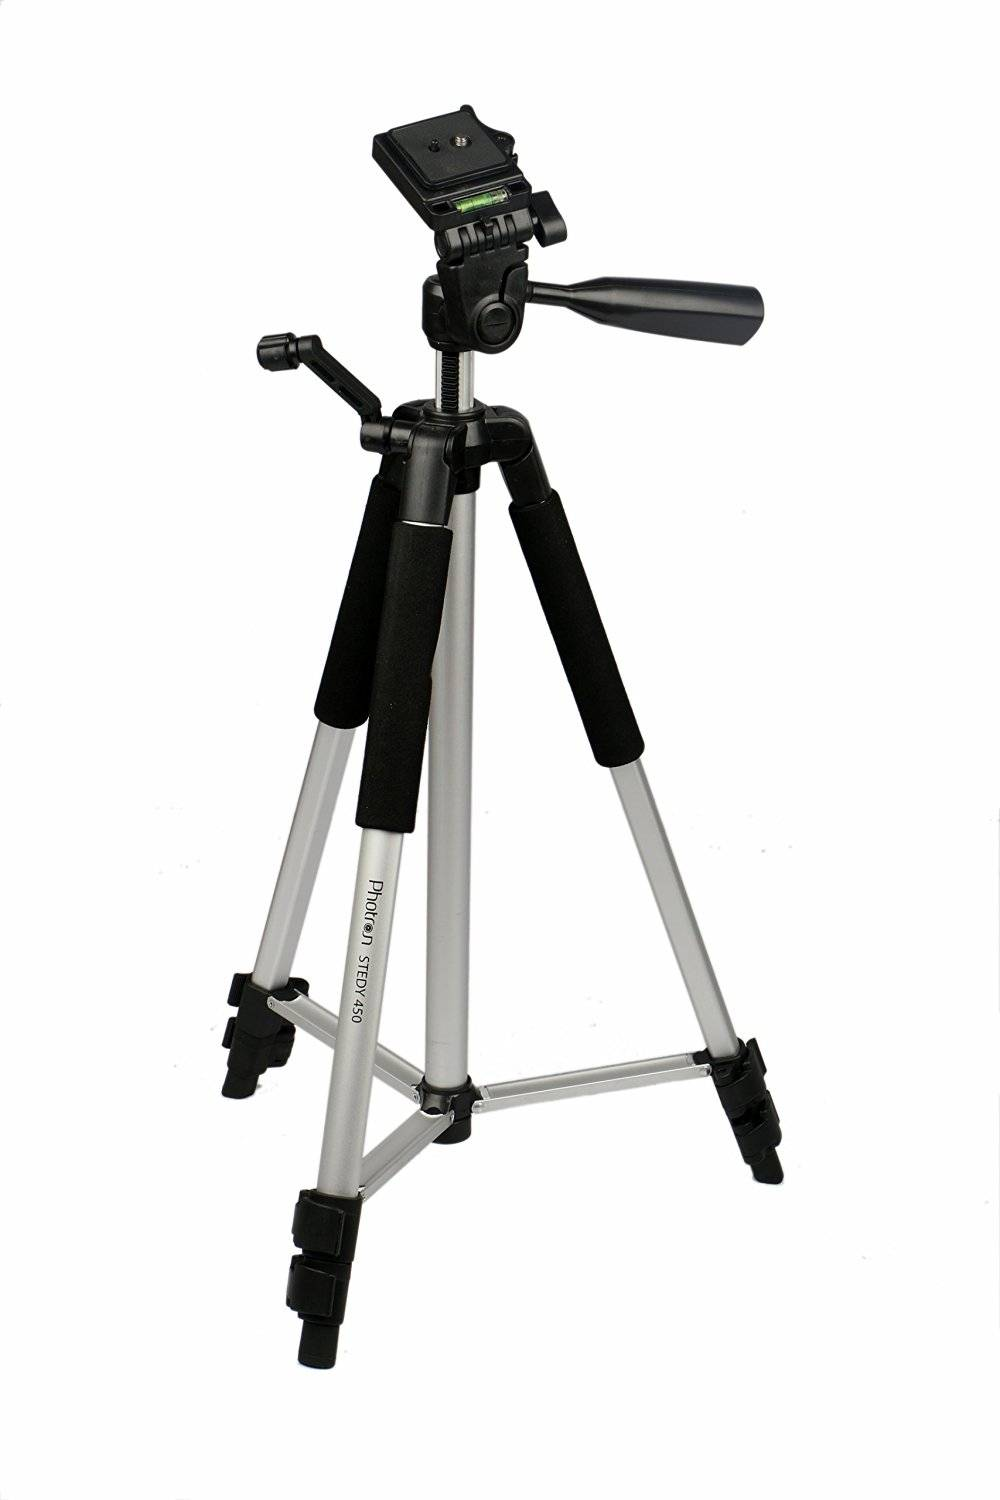 Photron Tripod Stedy 450 with Pan Head 4.5 Feet + Extra Quick Release Plate + Foam Grip and Carry Case